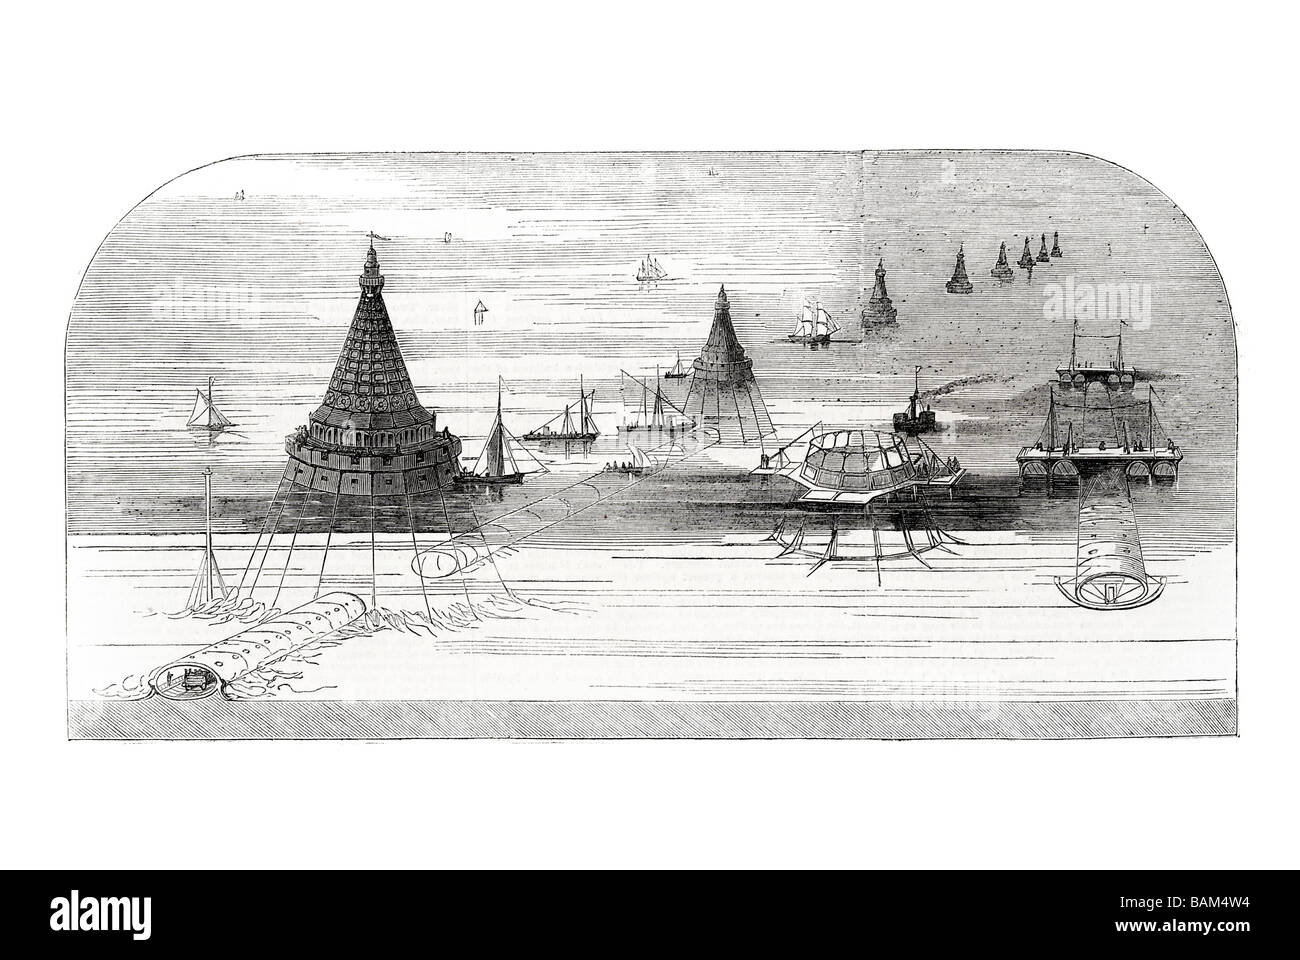 submarine railway between france and england projected by hector horeau French mining engineer 1851 channel tunnel Stock Photo